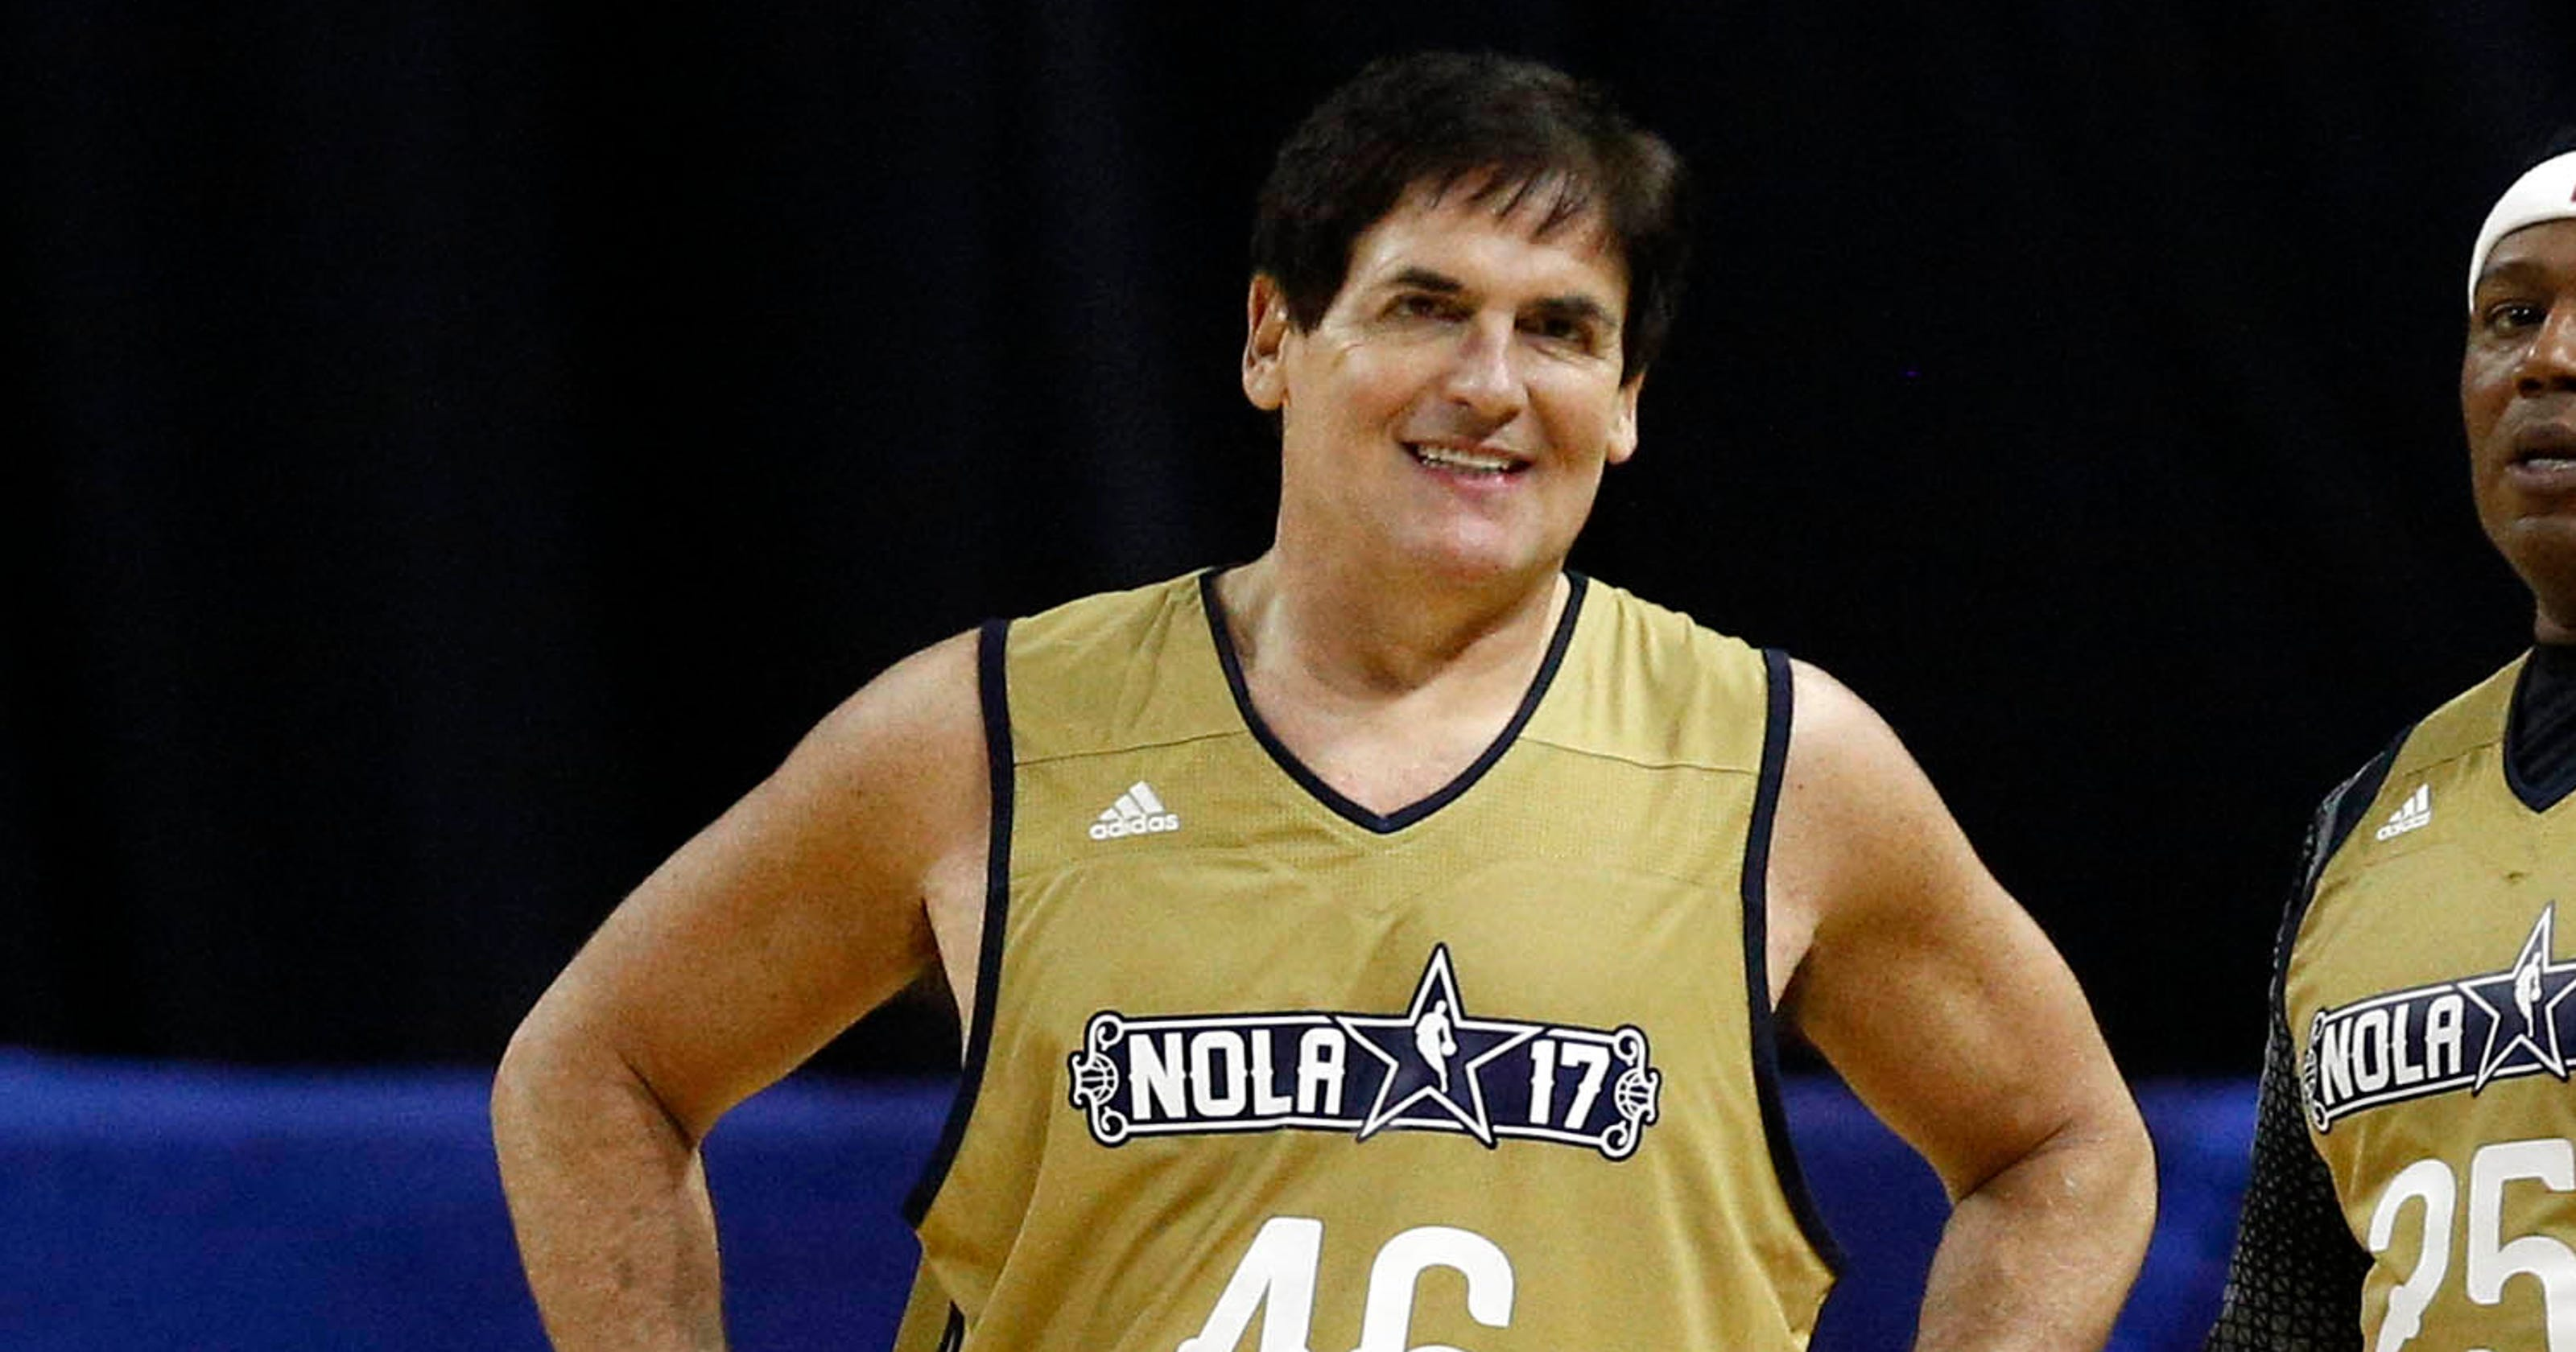 b110c7d58 Mark Cuban takes jab at Trump by wearing No. 46 in NBA Celebrity Game